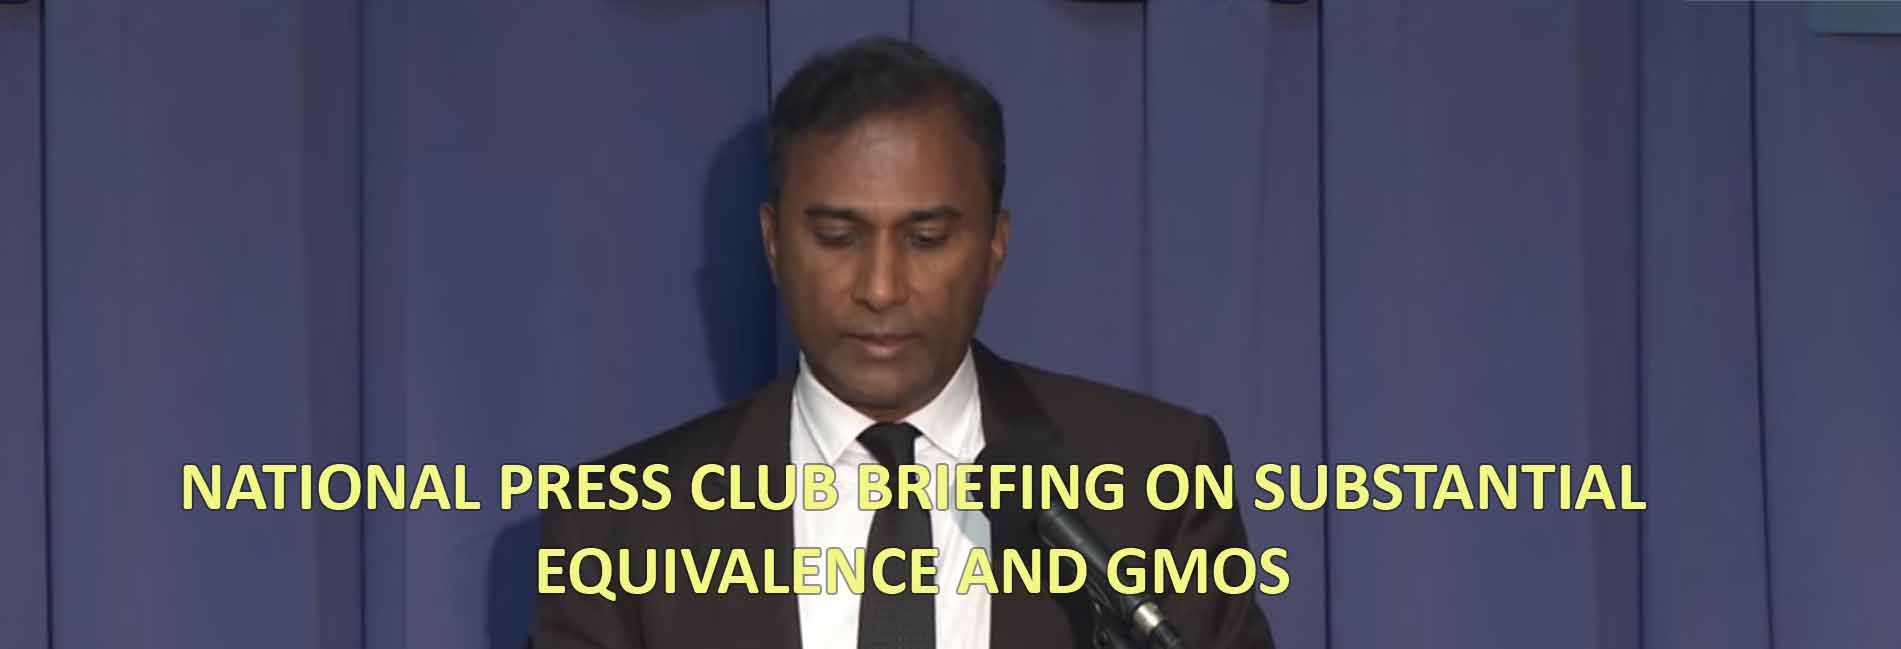 National Press Club Briefing On Substantial Equivalence And GMOs